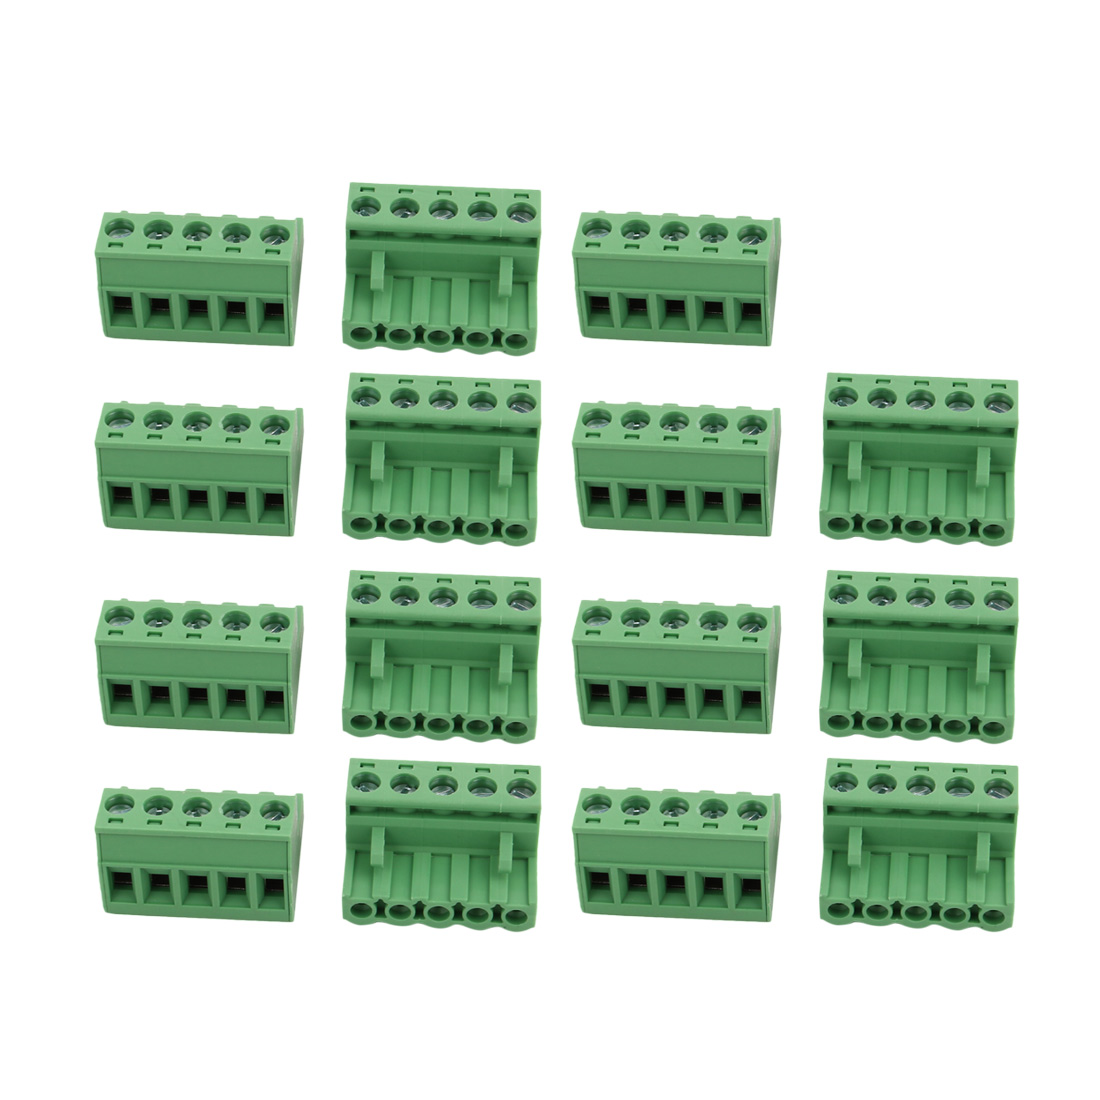 15Pcs LC1 AC300V 15A 5.08mm Pitch 5P PCB Terminal Block Wire Connection